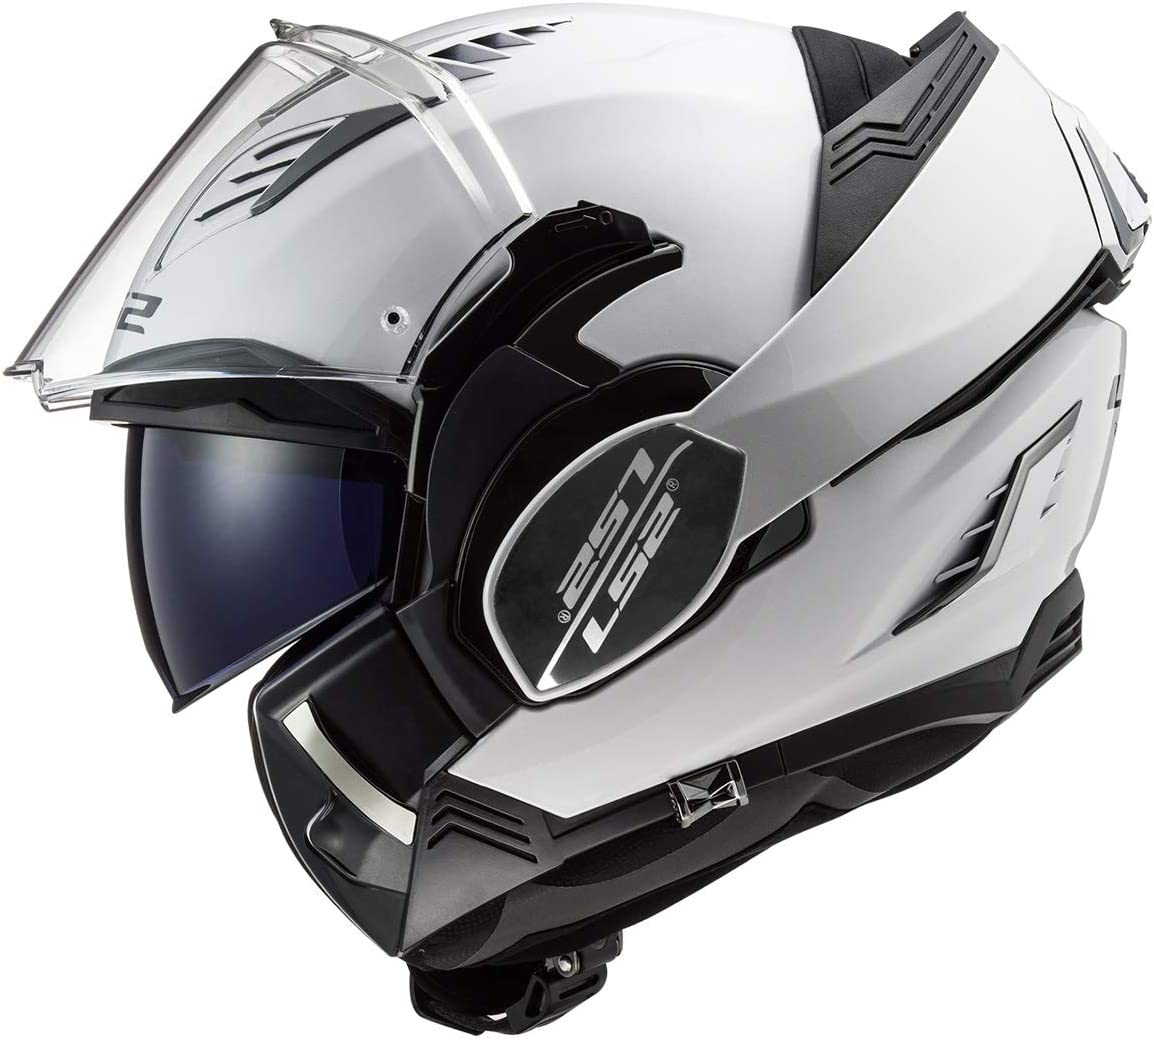 Gloss White - Medium LS2 Helmets Valiant II Modular Helmet